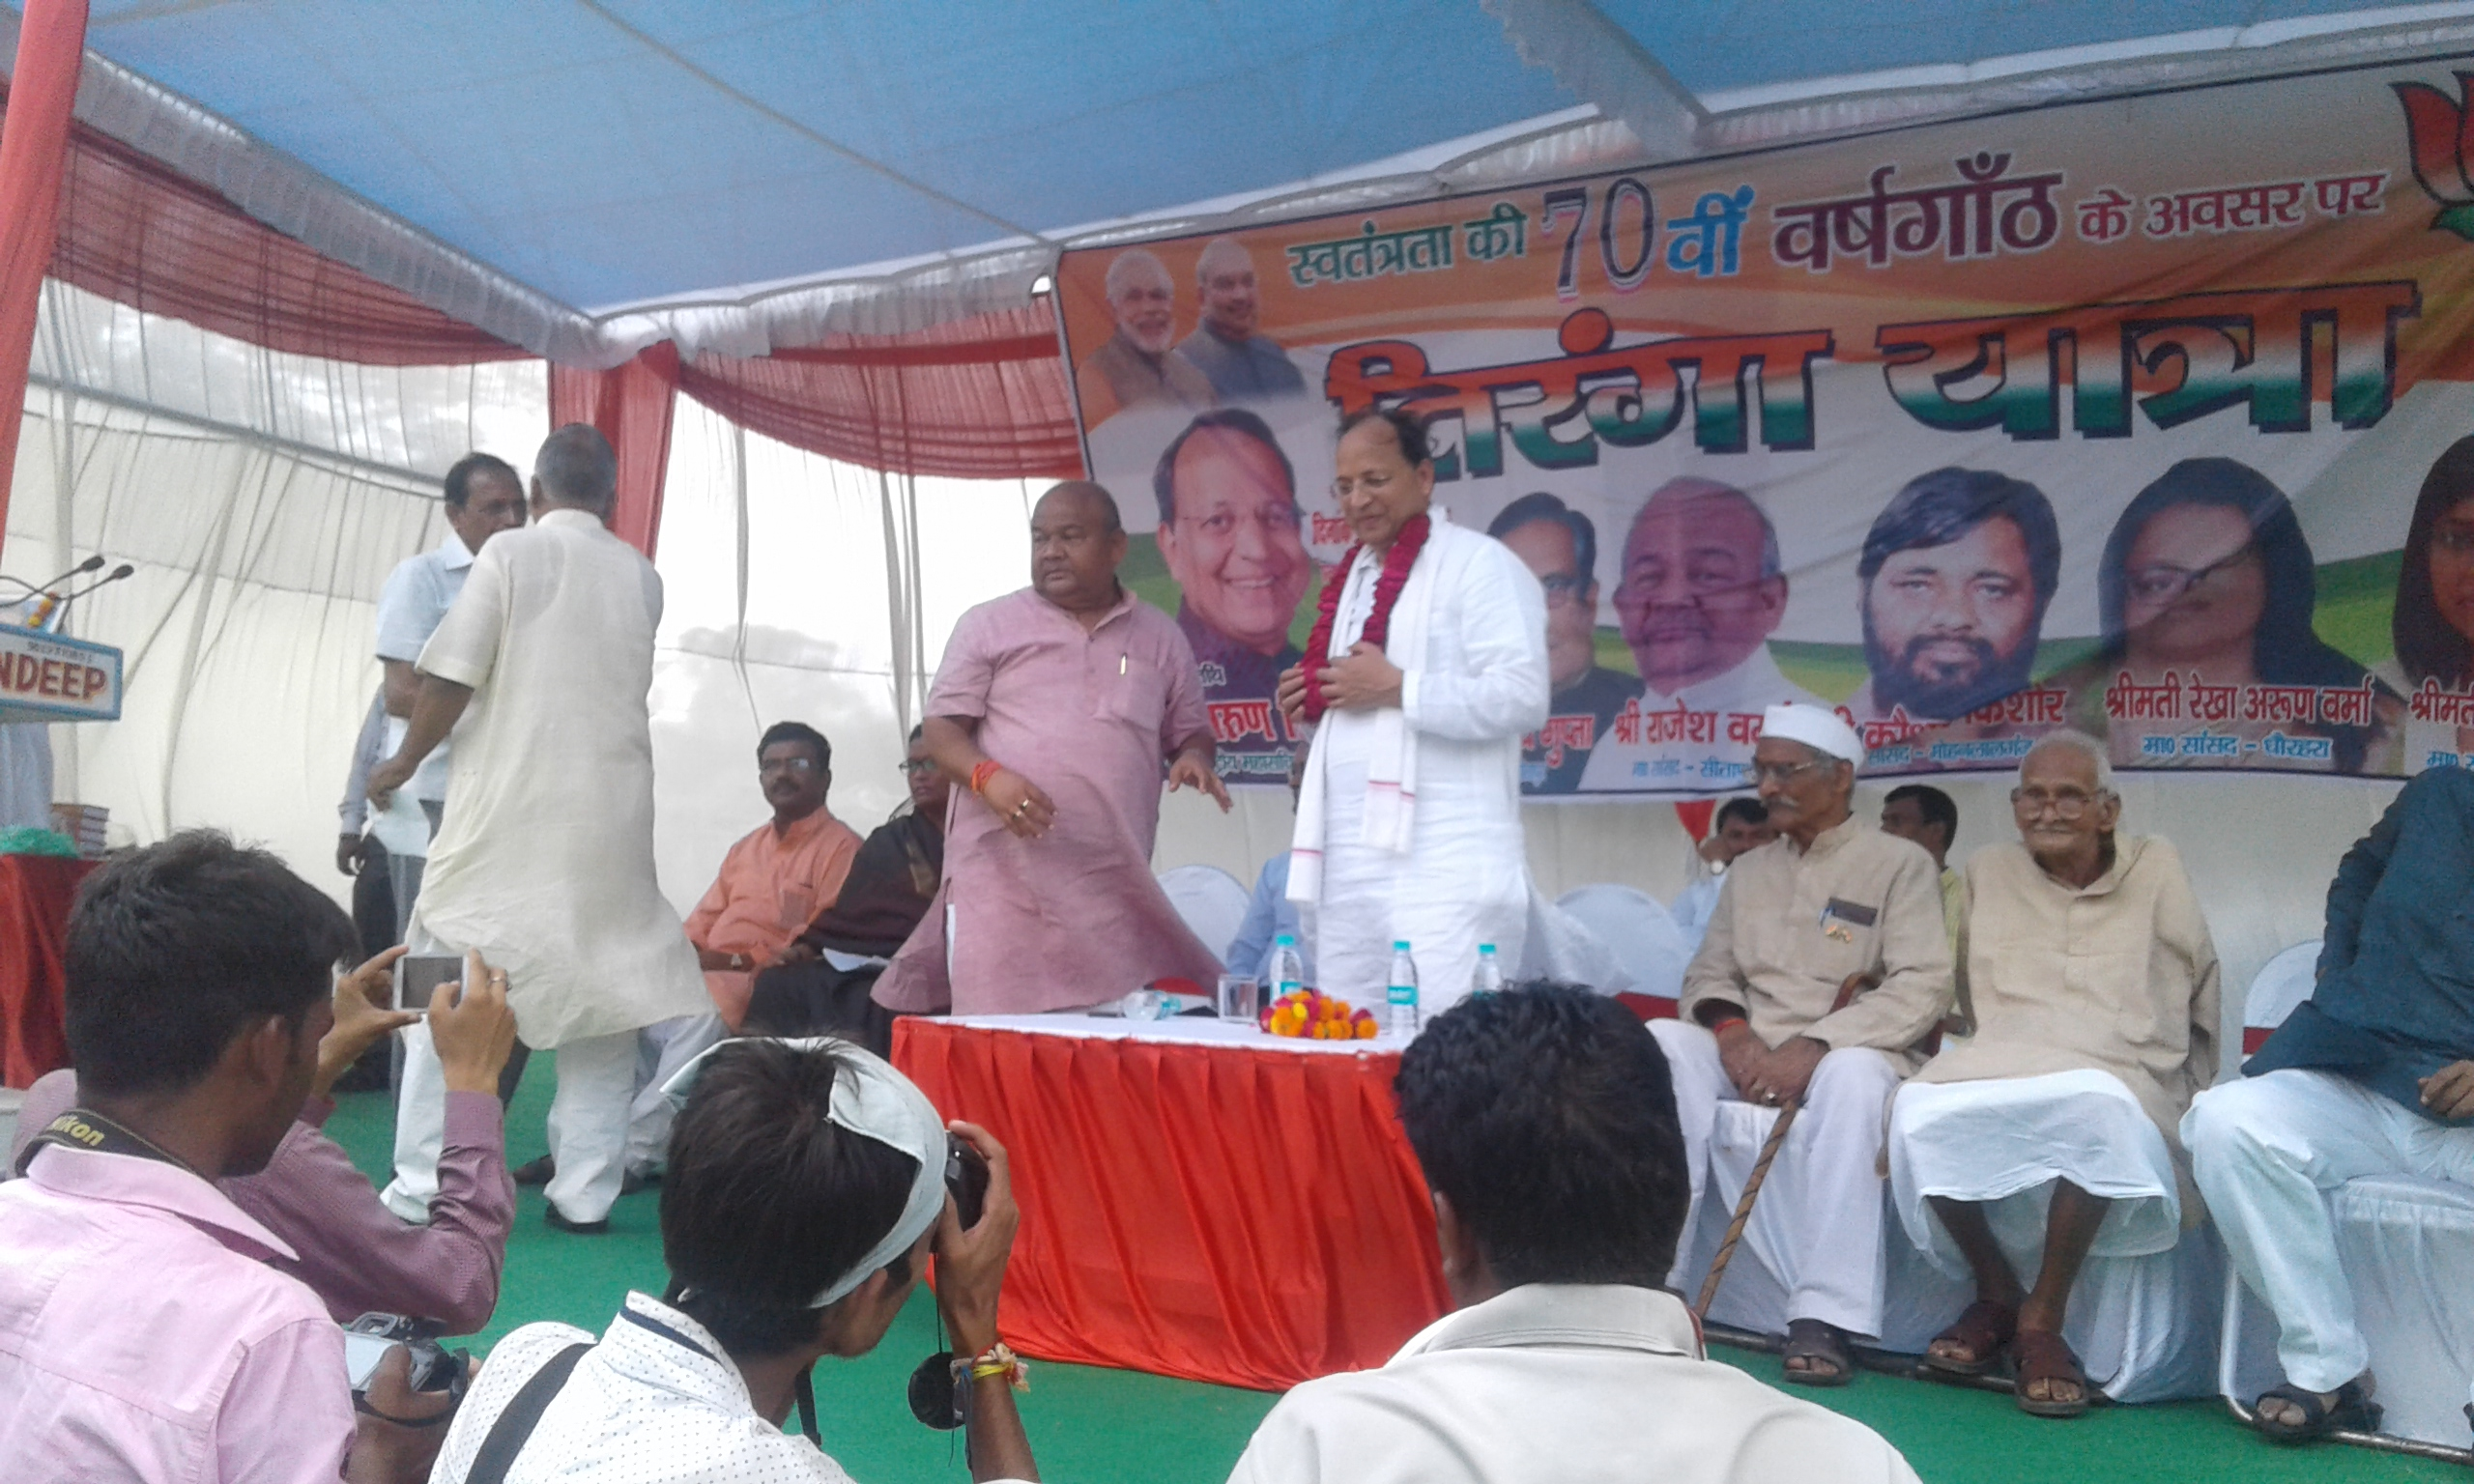 arun singh in tiranga yatra program